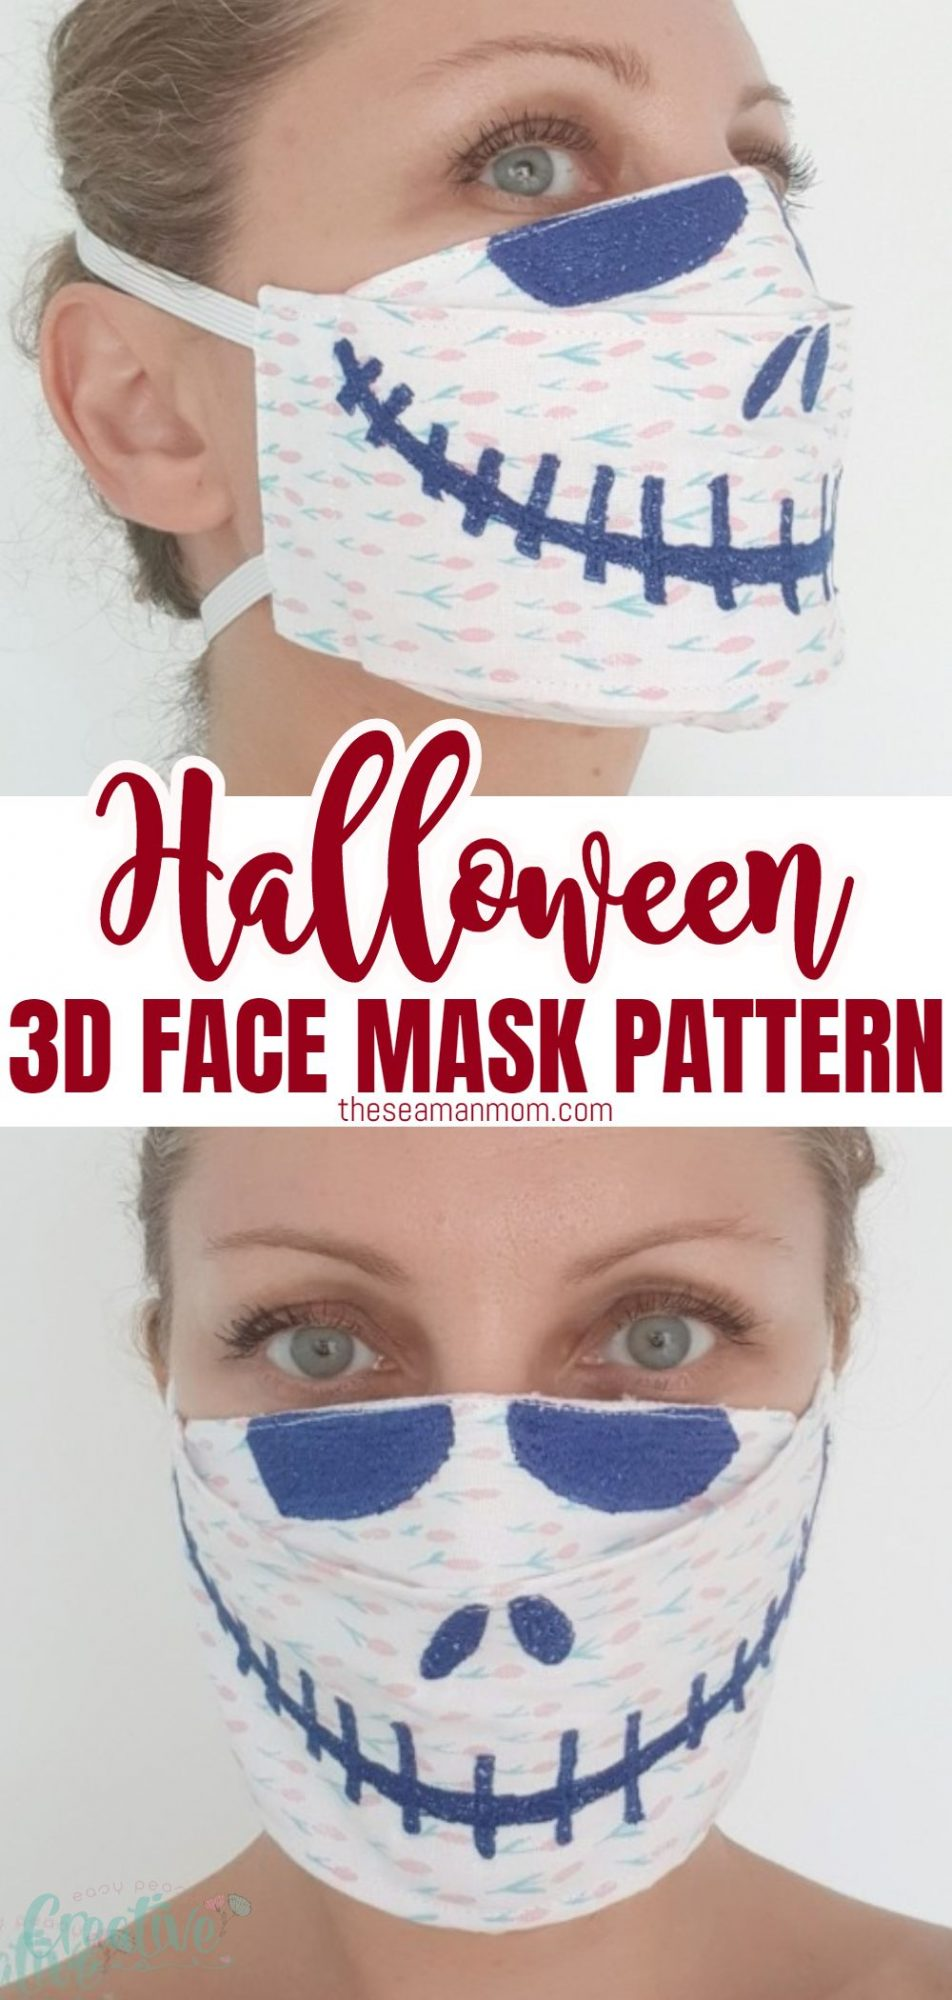 Photo collage of HALLOWEEN 3D FACE MASK pattern with Skellington embroidery, front and side view.